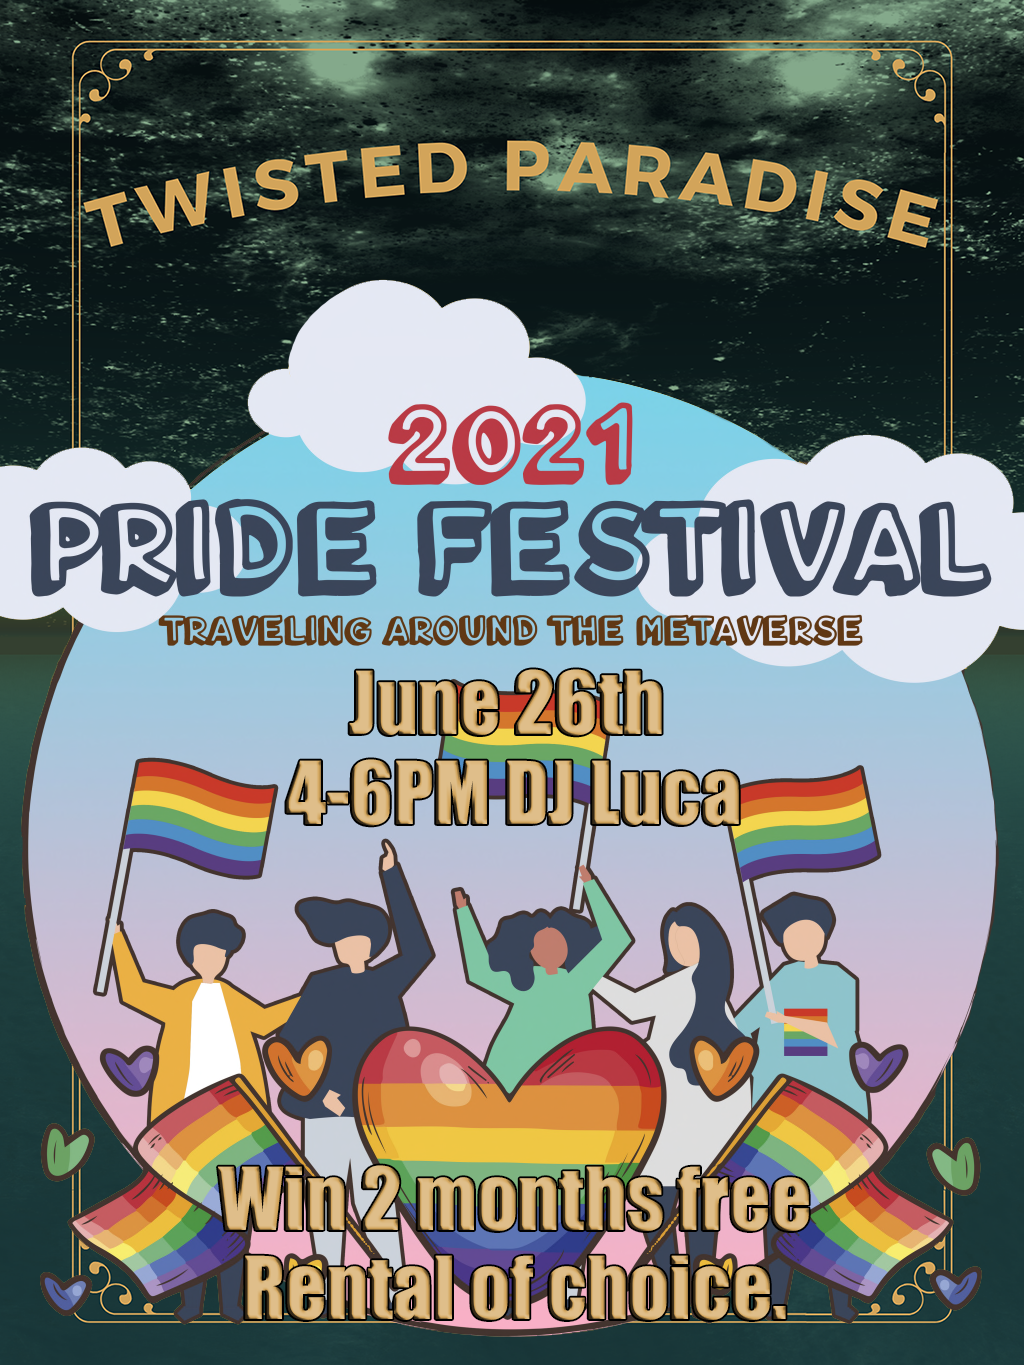 Twisted_Paradise_Pride_Festival_2021.png